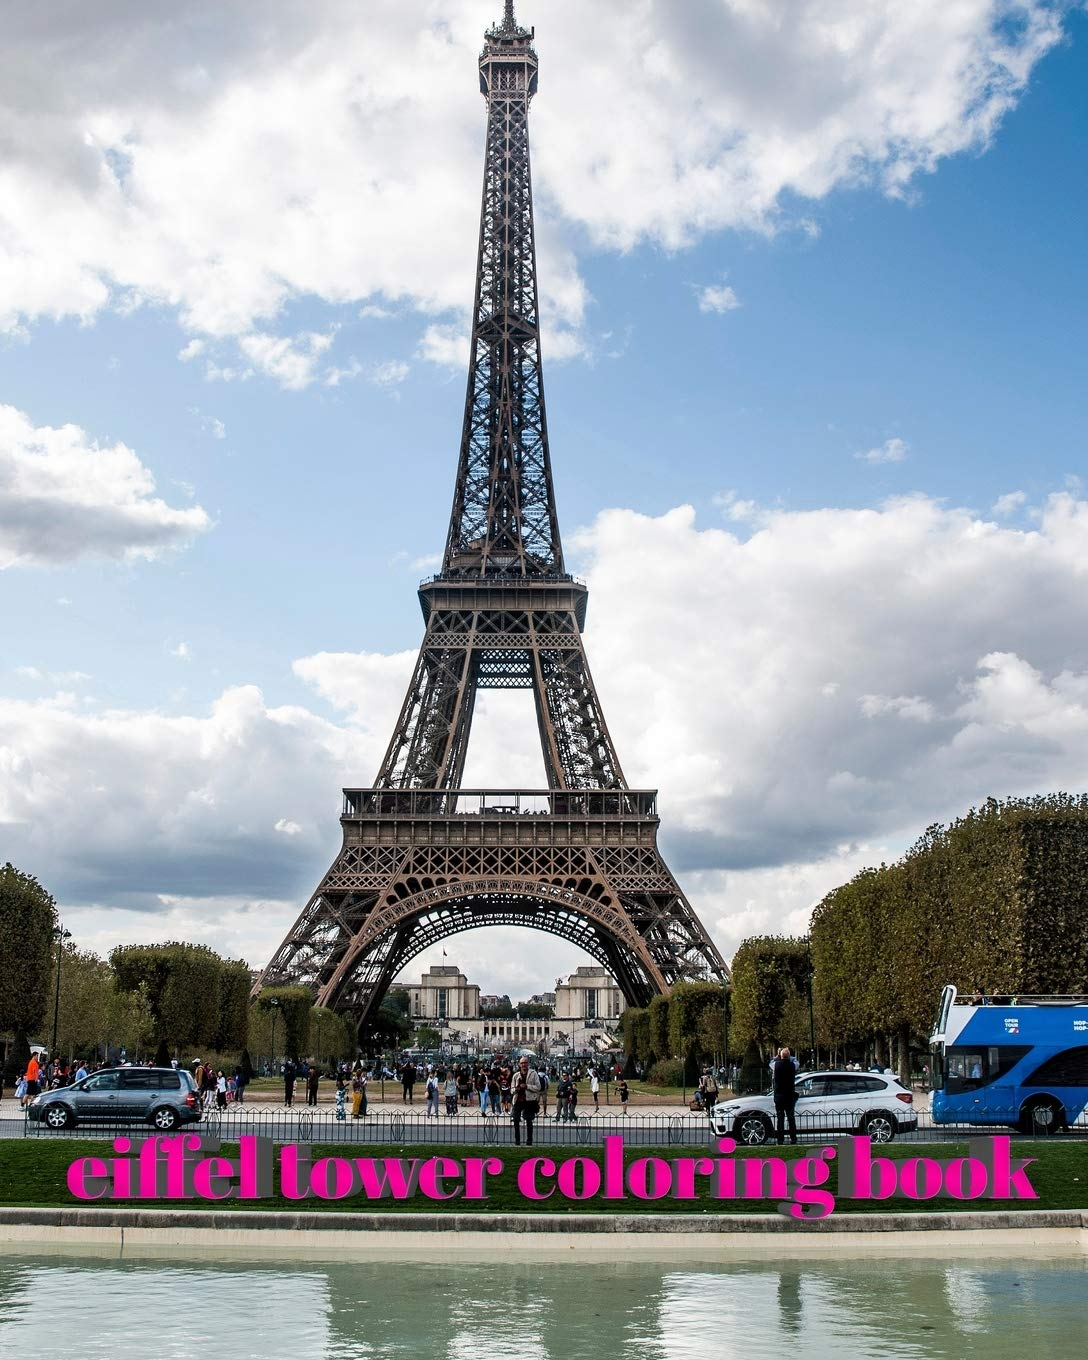 Paris Eiffel Tower Children And Adult Coloring Template Sketchbook Huhn Sir Michael 9781714304240 Amazon Com Books